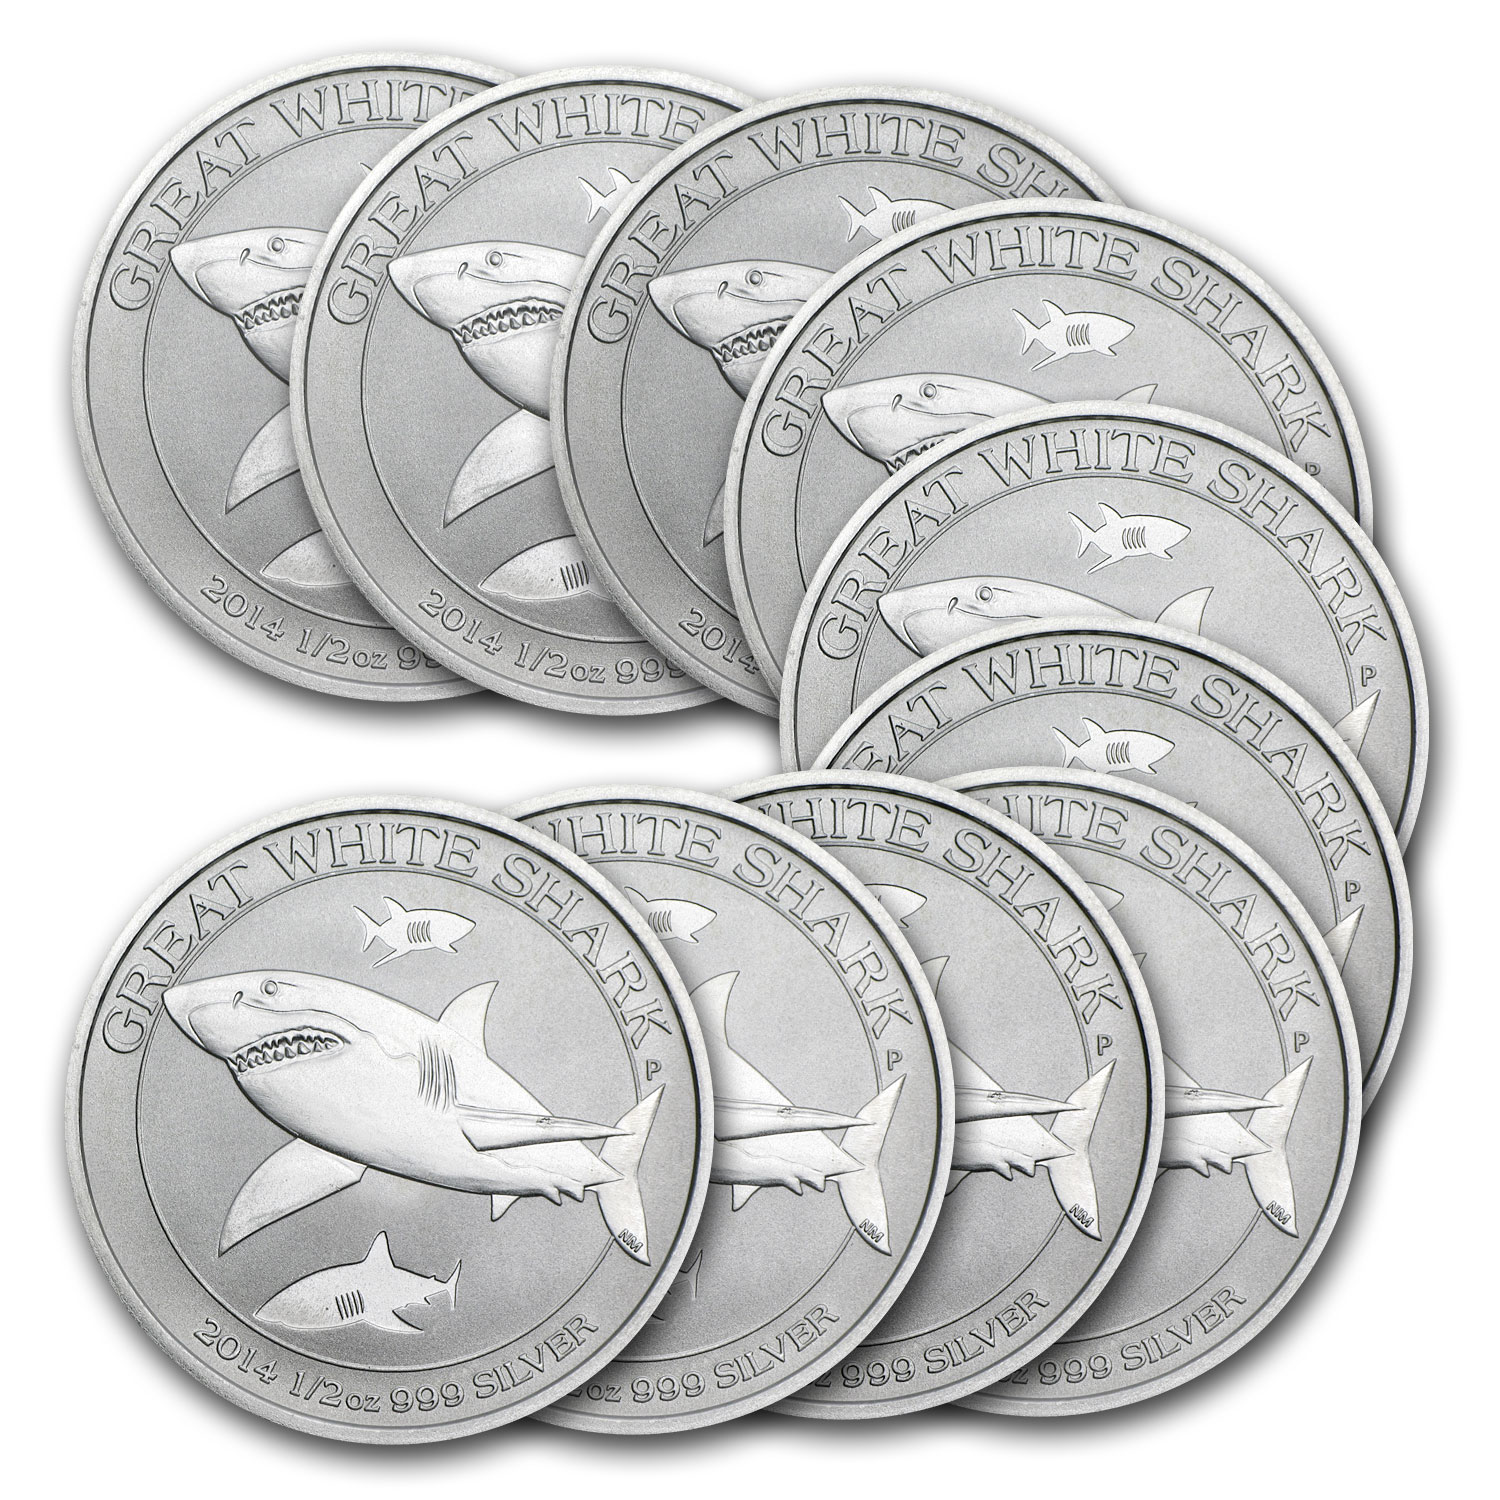 2014 1/2 oz Silver Australian Great White Shark (Lot of 10)